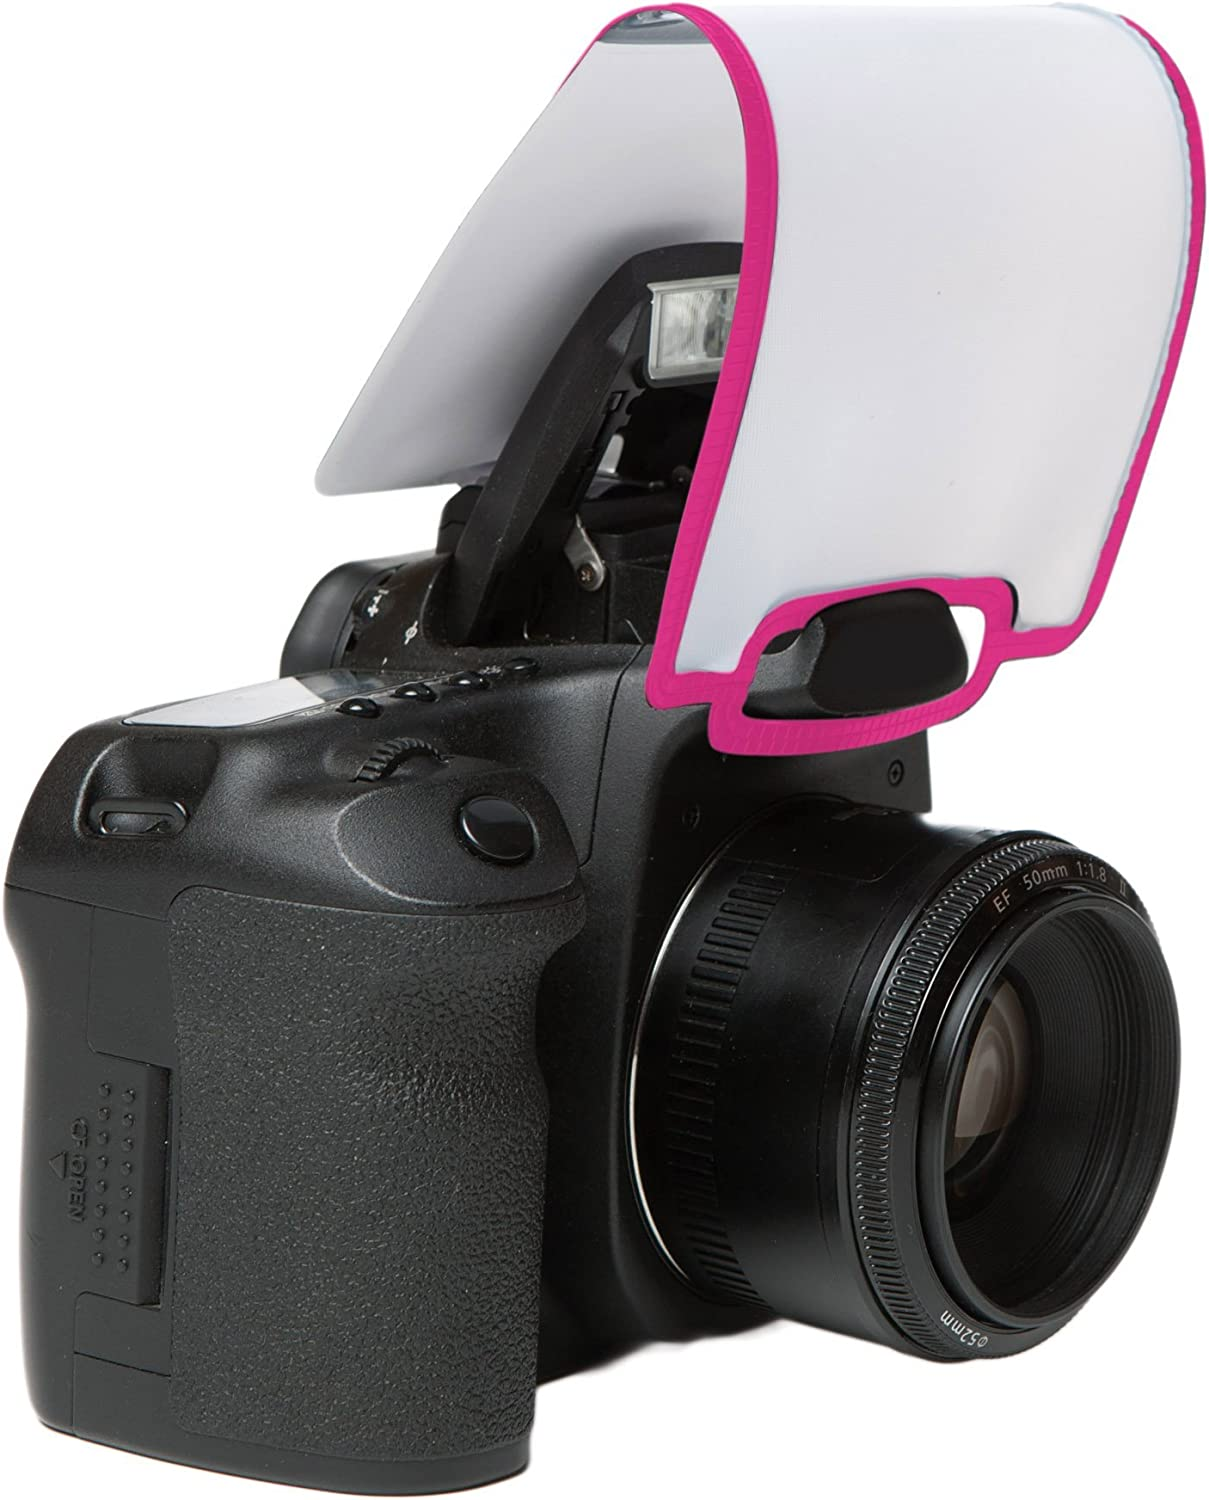 LumiQuest SoftScreen Max 49% OFF LQ-051M Special Campaign with Diff Flash UltraStrap-Features